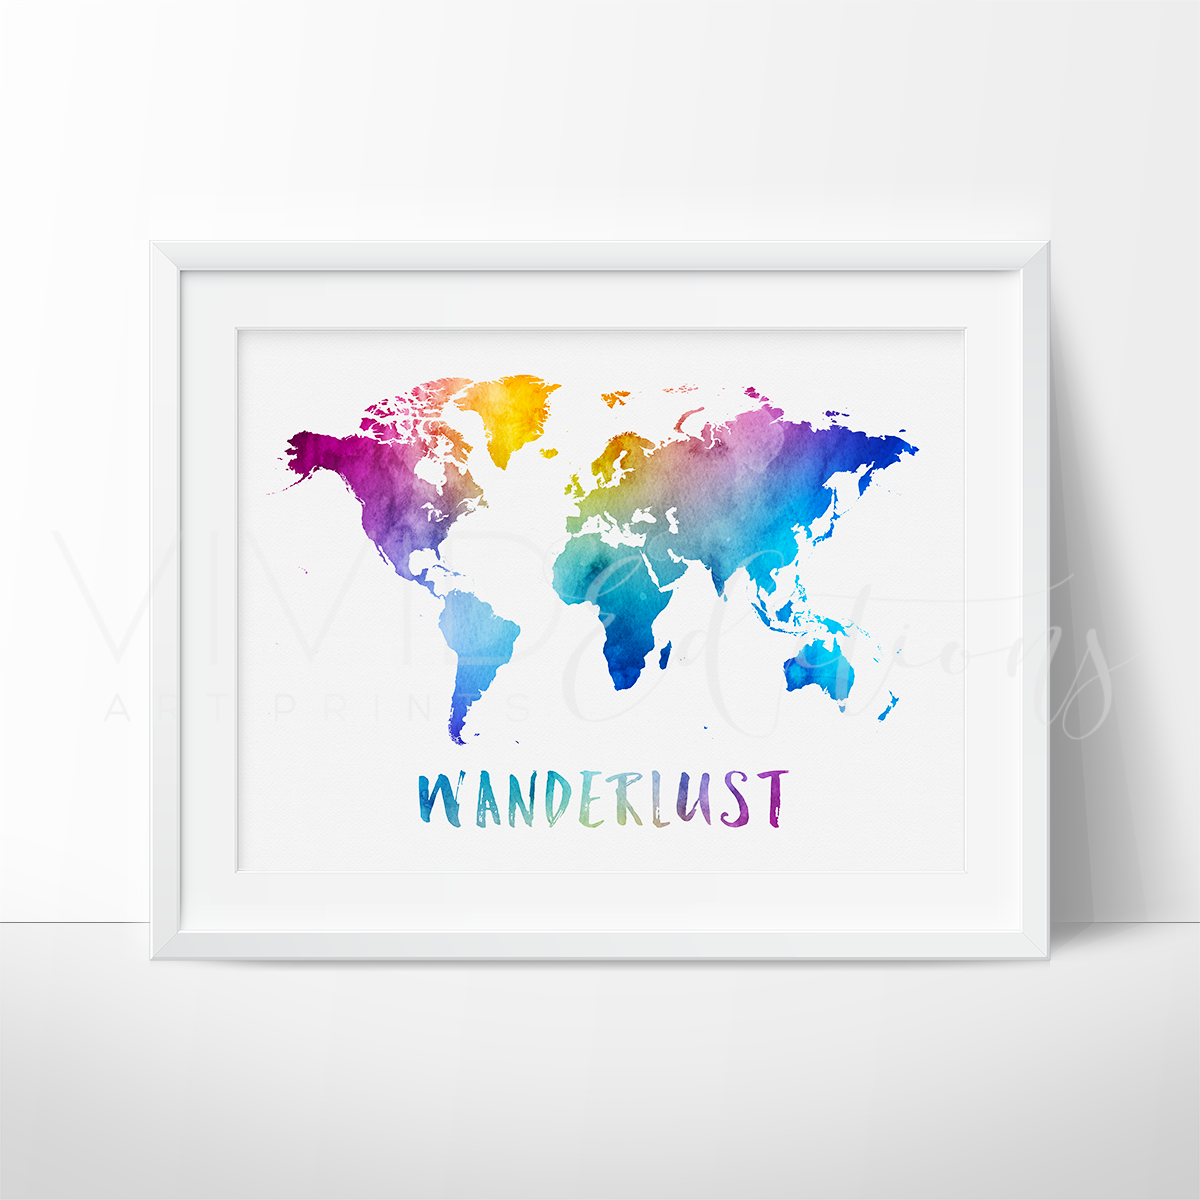 Wanderlust travel quote world map home or nursery wall art decor wanderlust travel quote world map watercolor art print gumiabroncs Image collections